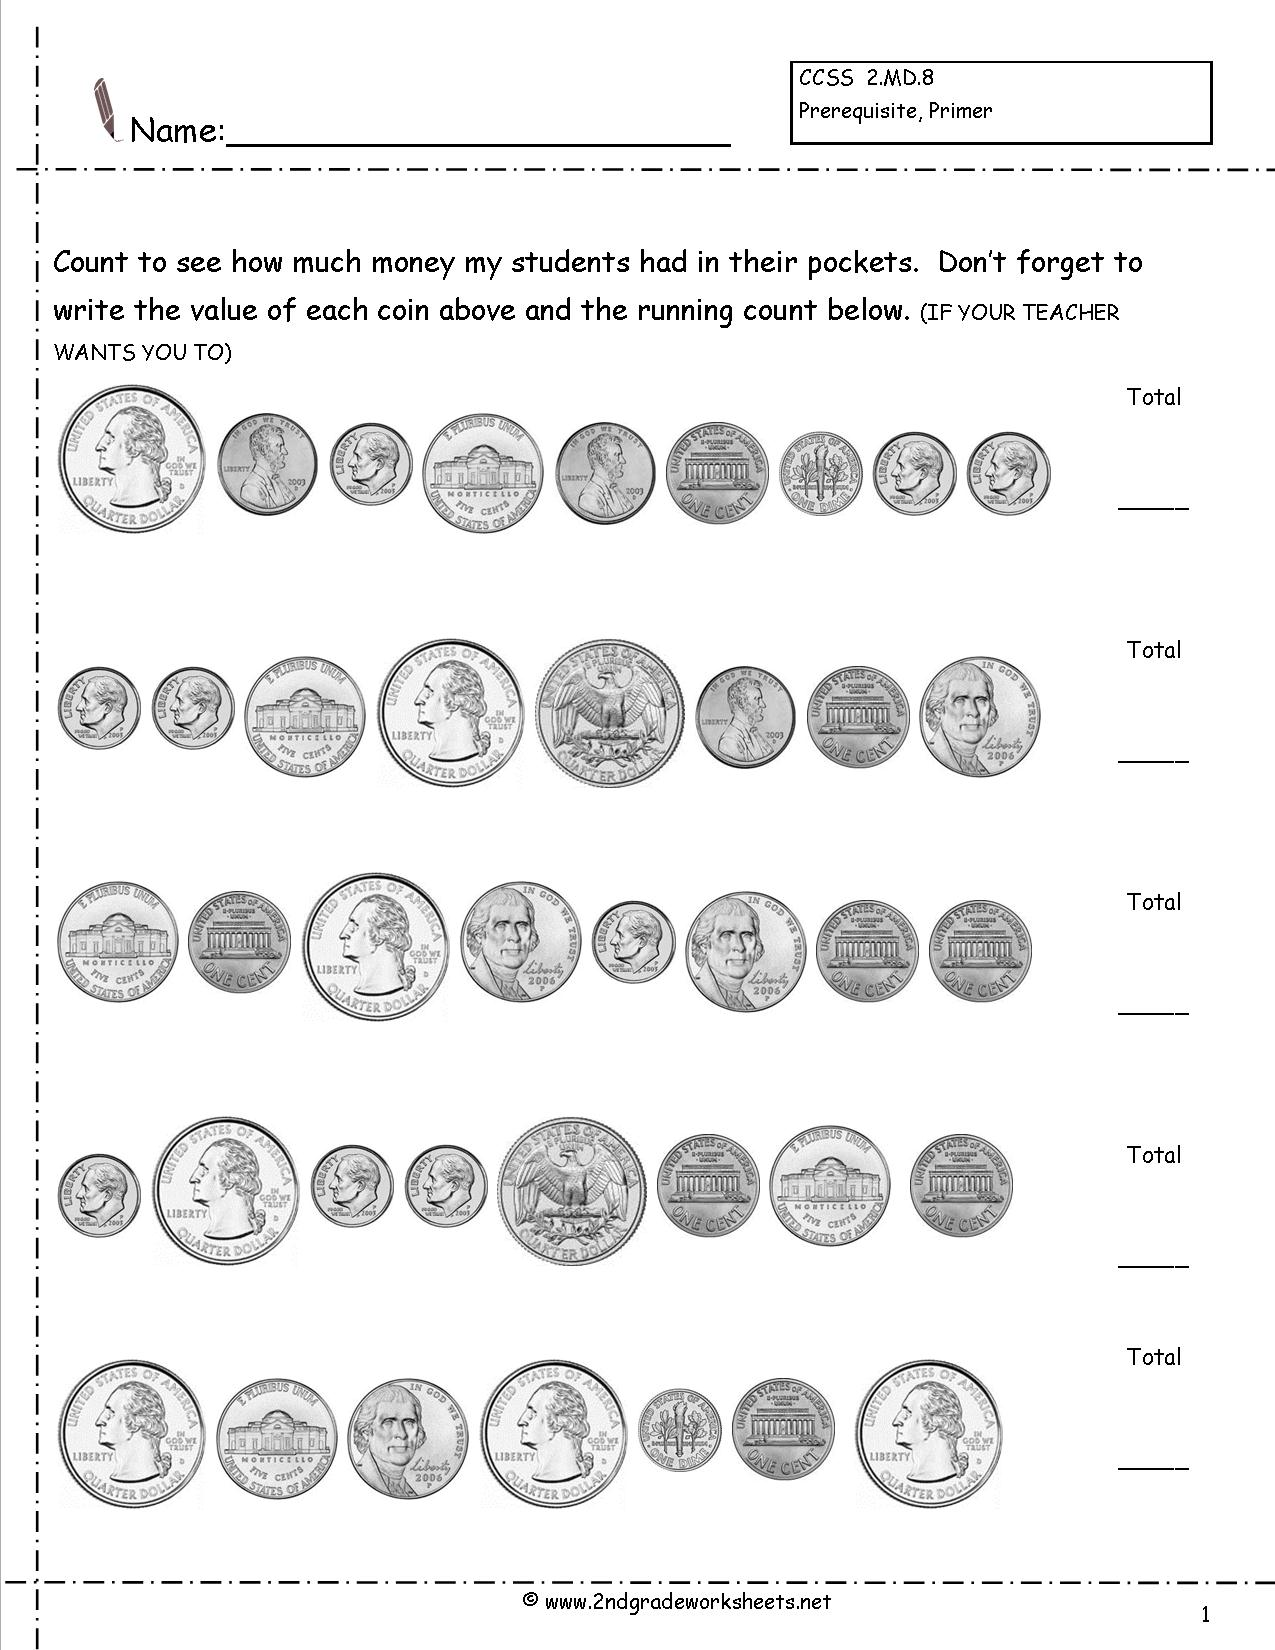 Counting Money Worksheet For 2nd Grade